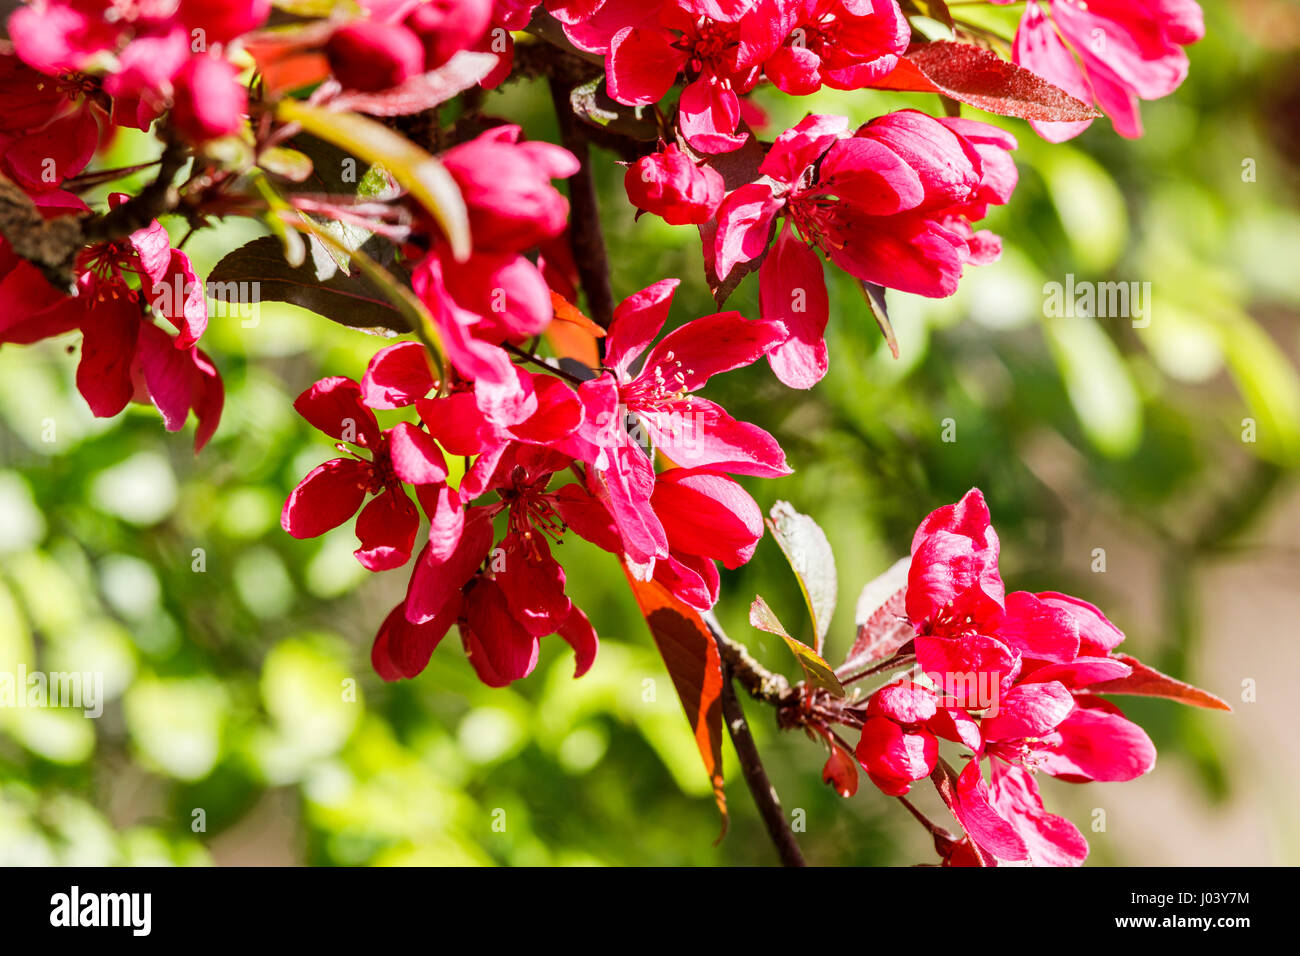 Crab apple blossom close up uk stock photos crab apple blossom purple to dark pink or red blossom of crab apple malus tree flowering in mightylinksfo